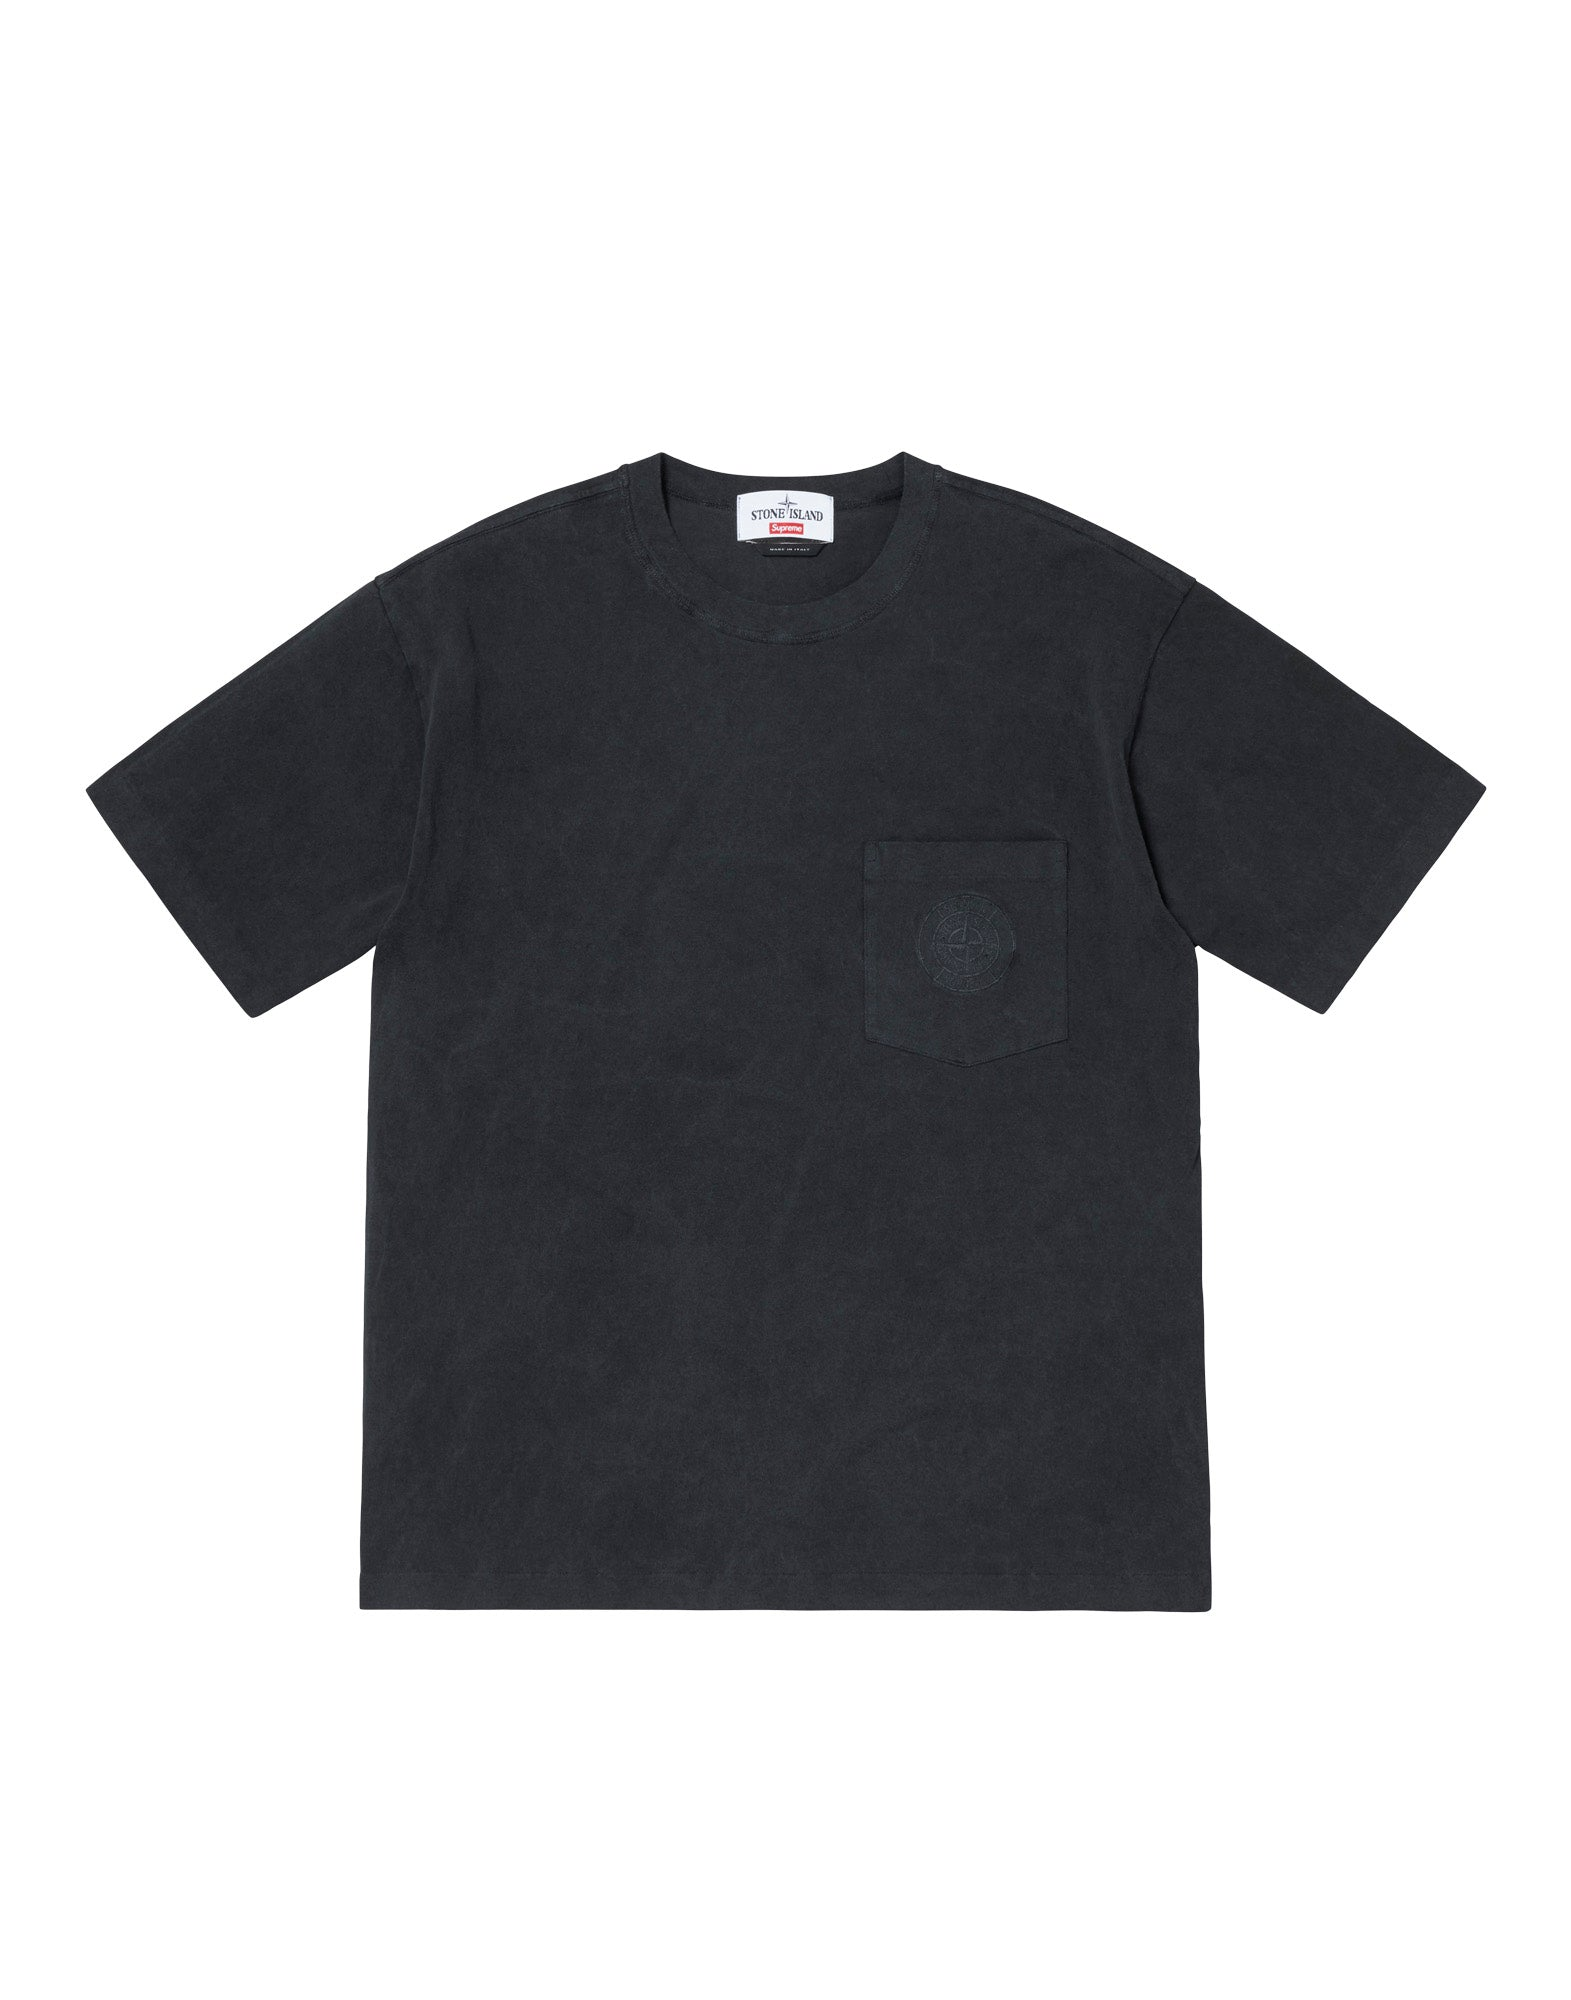 201S1 DUST COLOUR T-Shirt in Black